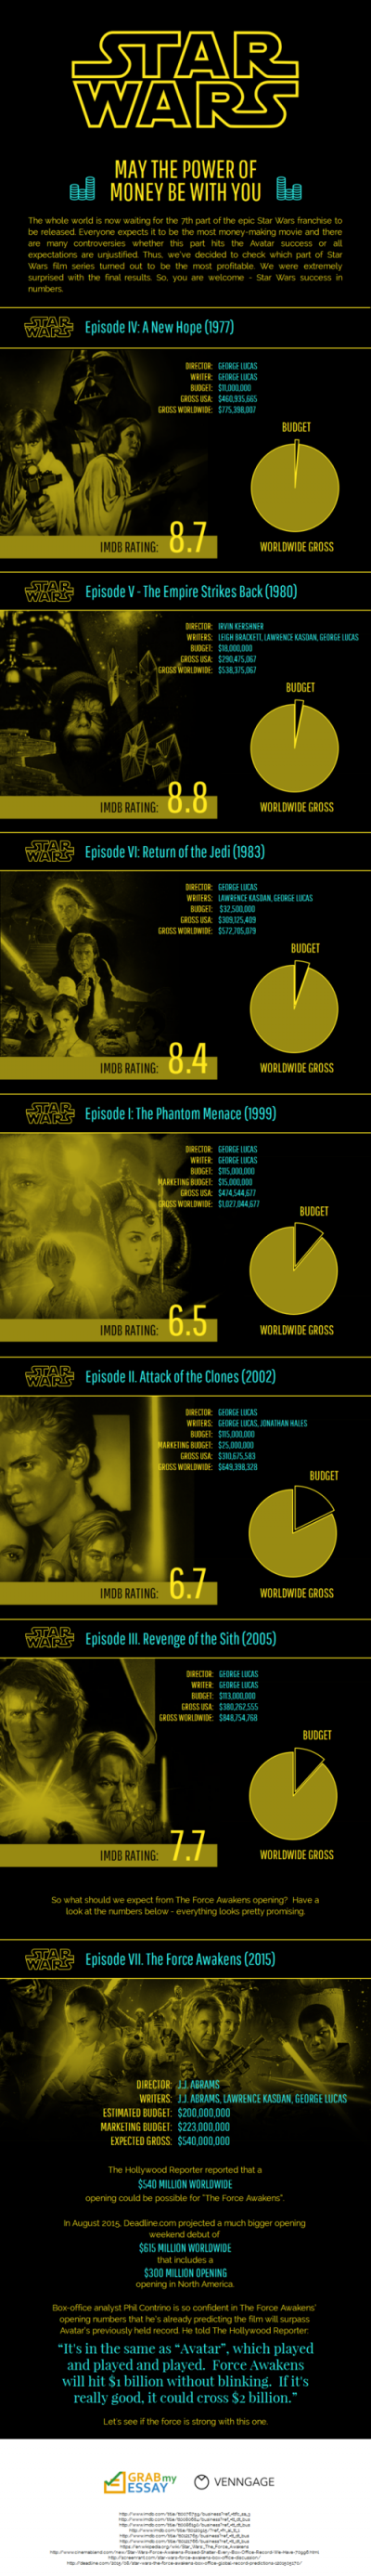 Star Wars - May The Power Of Money Be With You [Infographic]